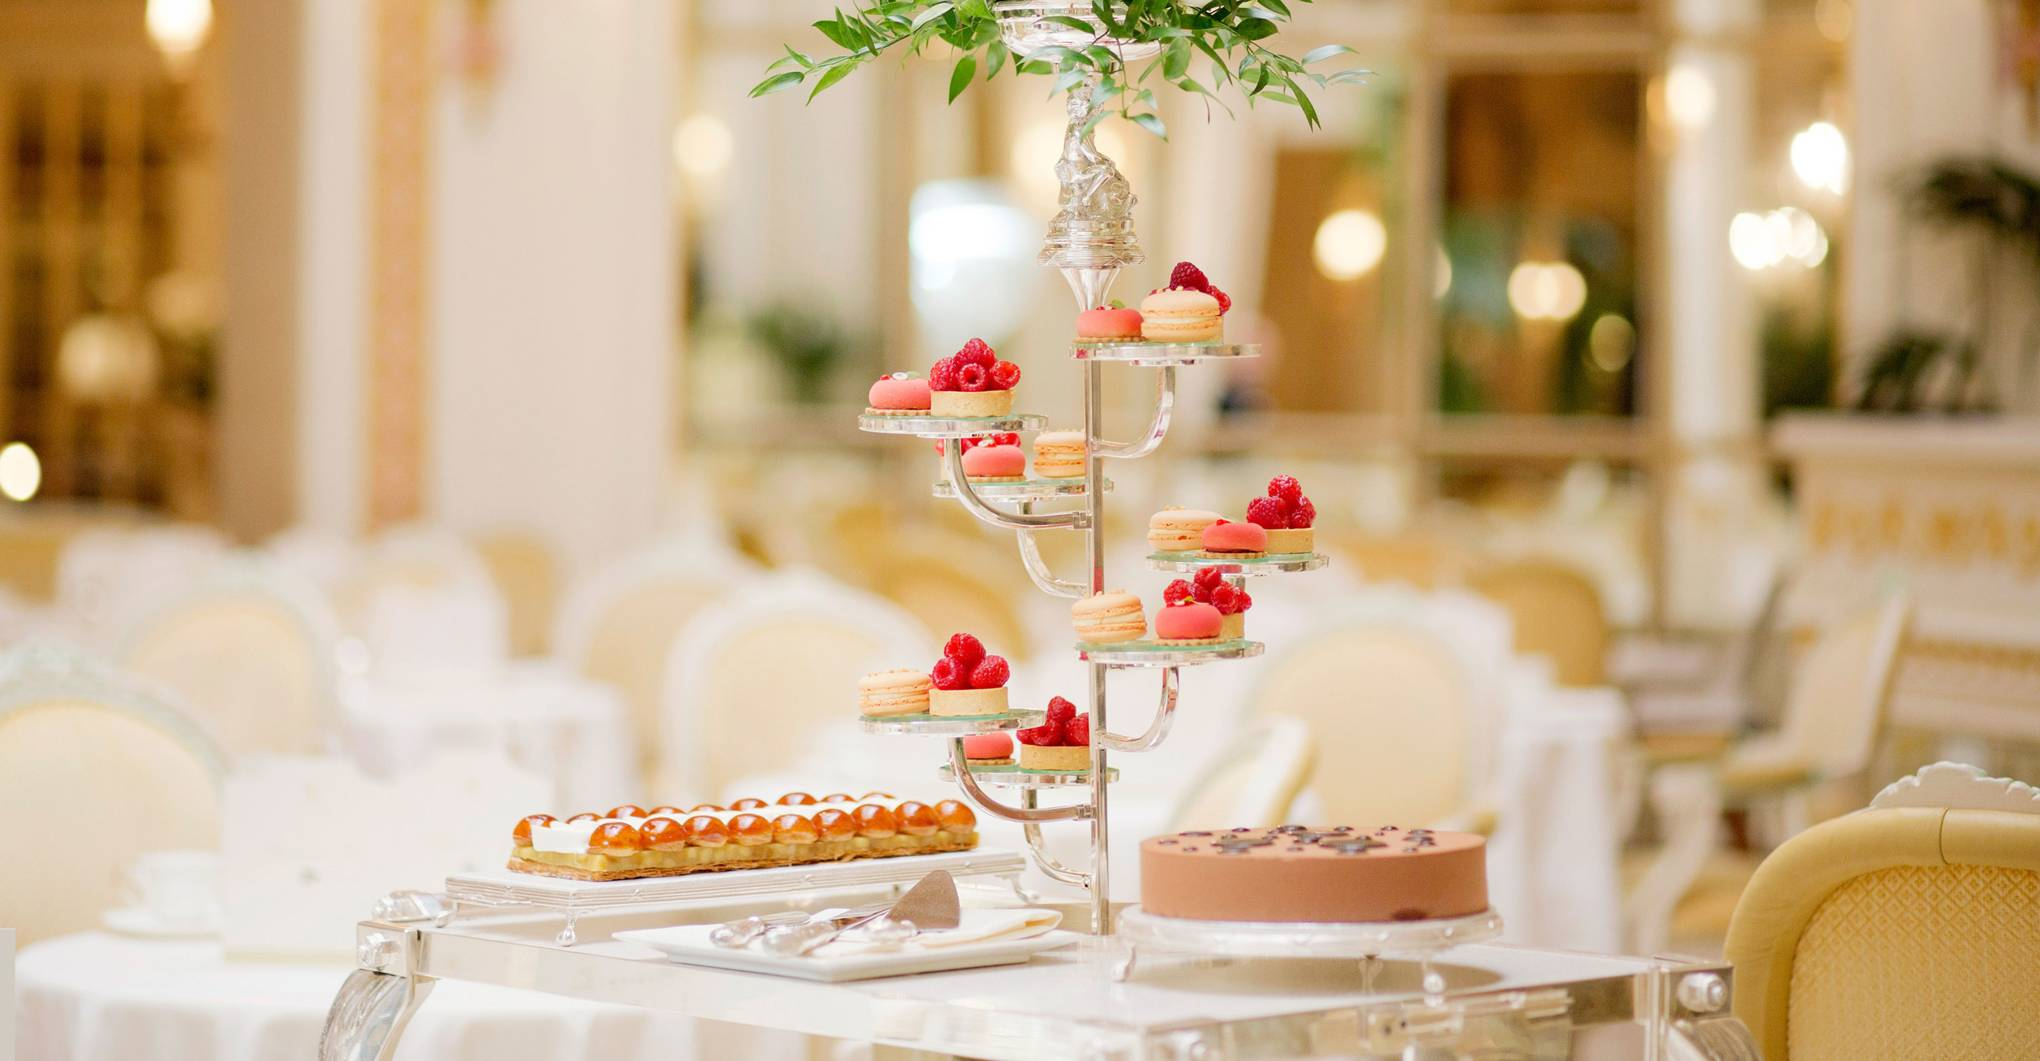 Win afternoon tea for two at The Ritz London